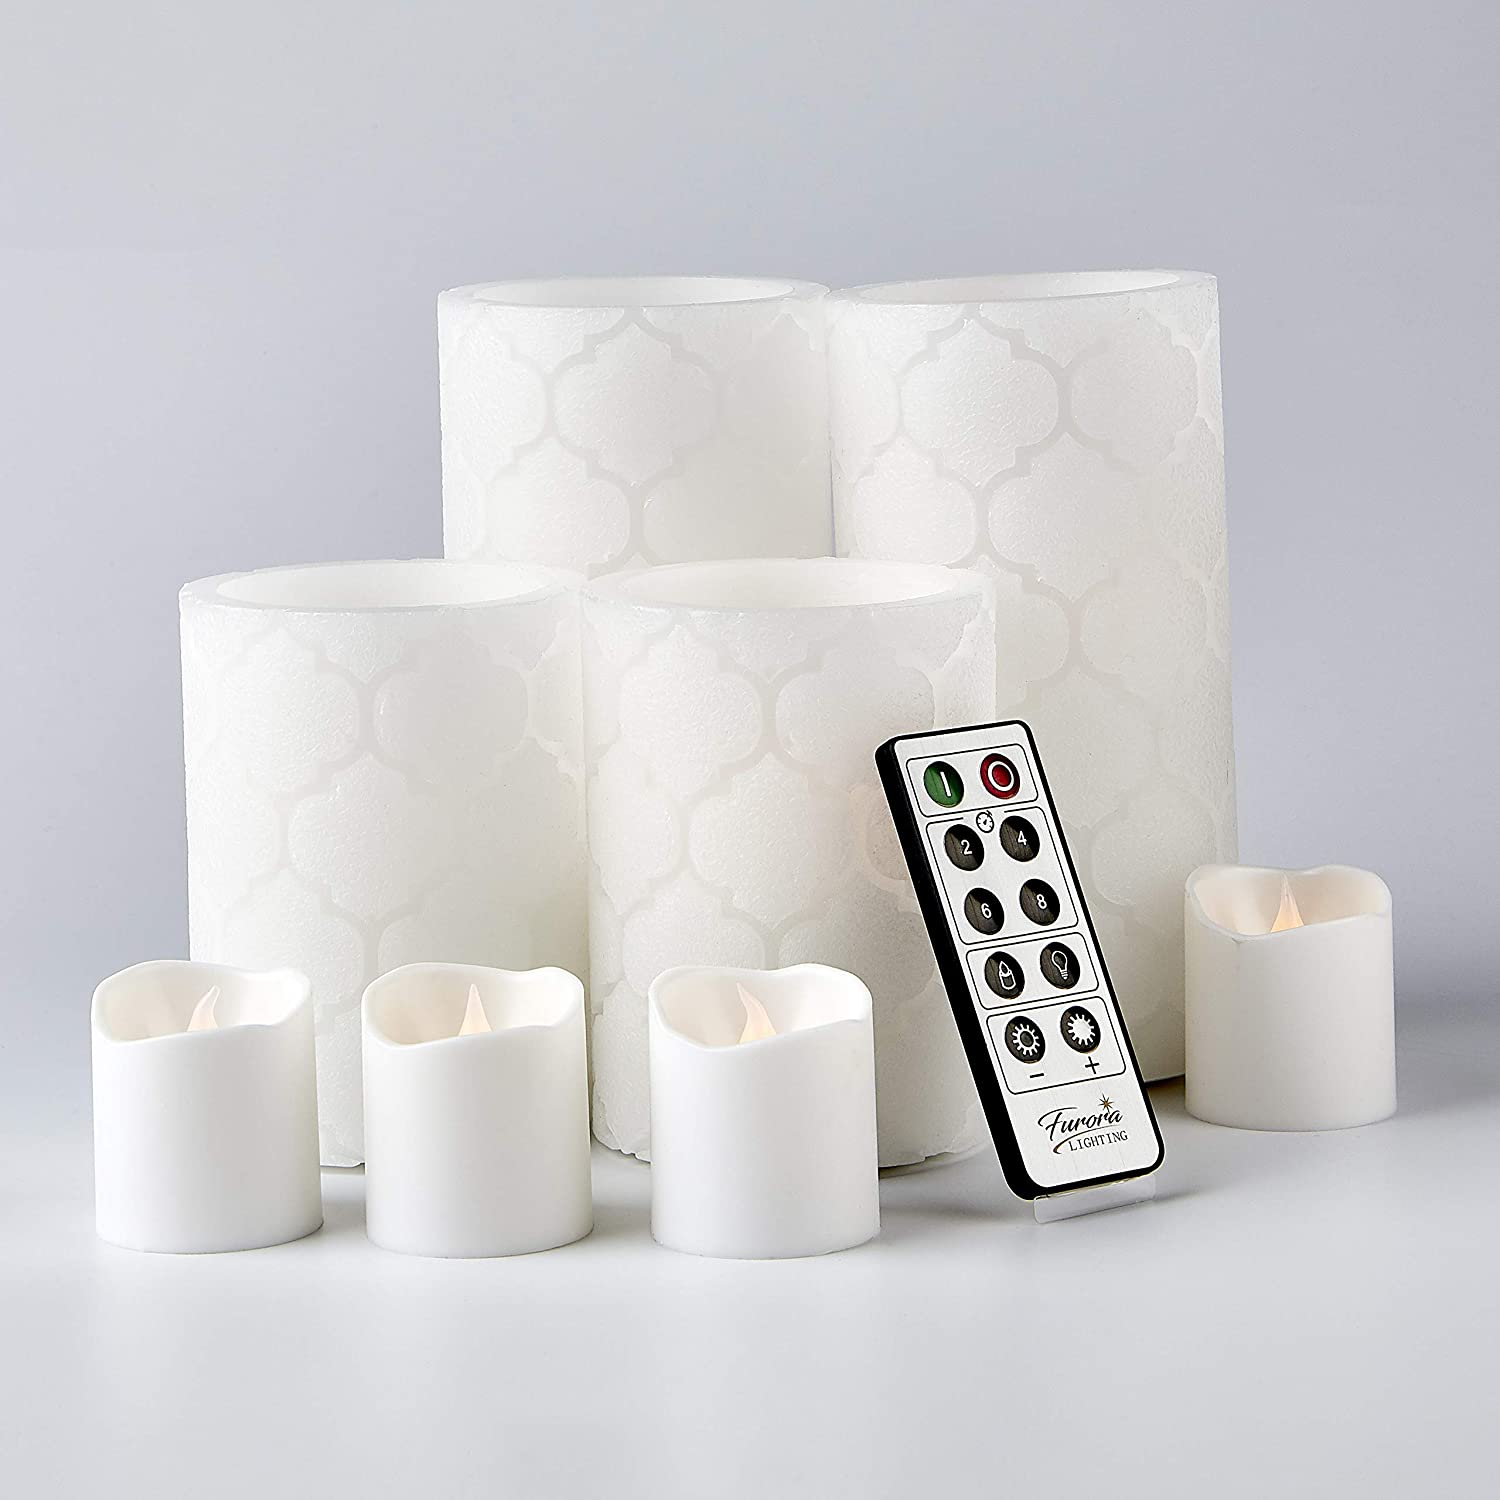 Furora LIGHTING LED Flameless Candles with Remote Control, Set of 8, Real Wax Battery Operated Pillars and Votives LED Candles with Flickering Flame and Timer Featured - White Nordic Collection